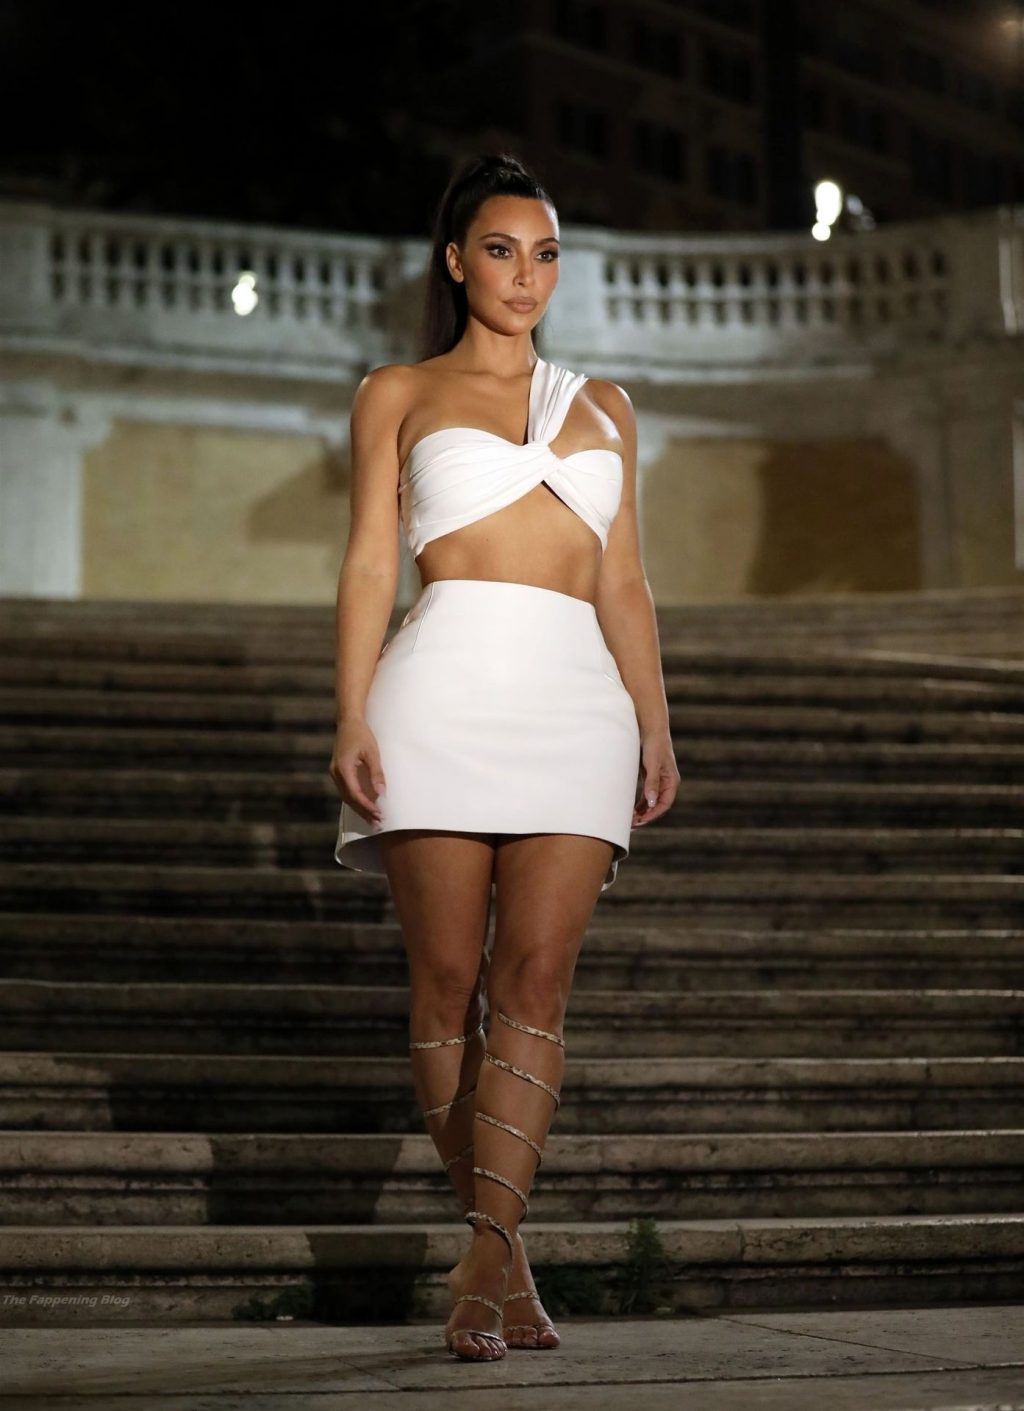 Kim Kardashian Stops By the Famous Spanish Steps to Take Pics in Rome (25 Photos)